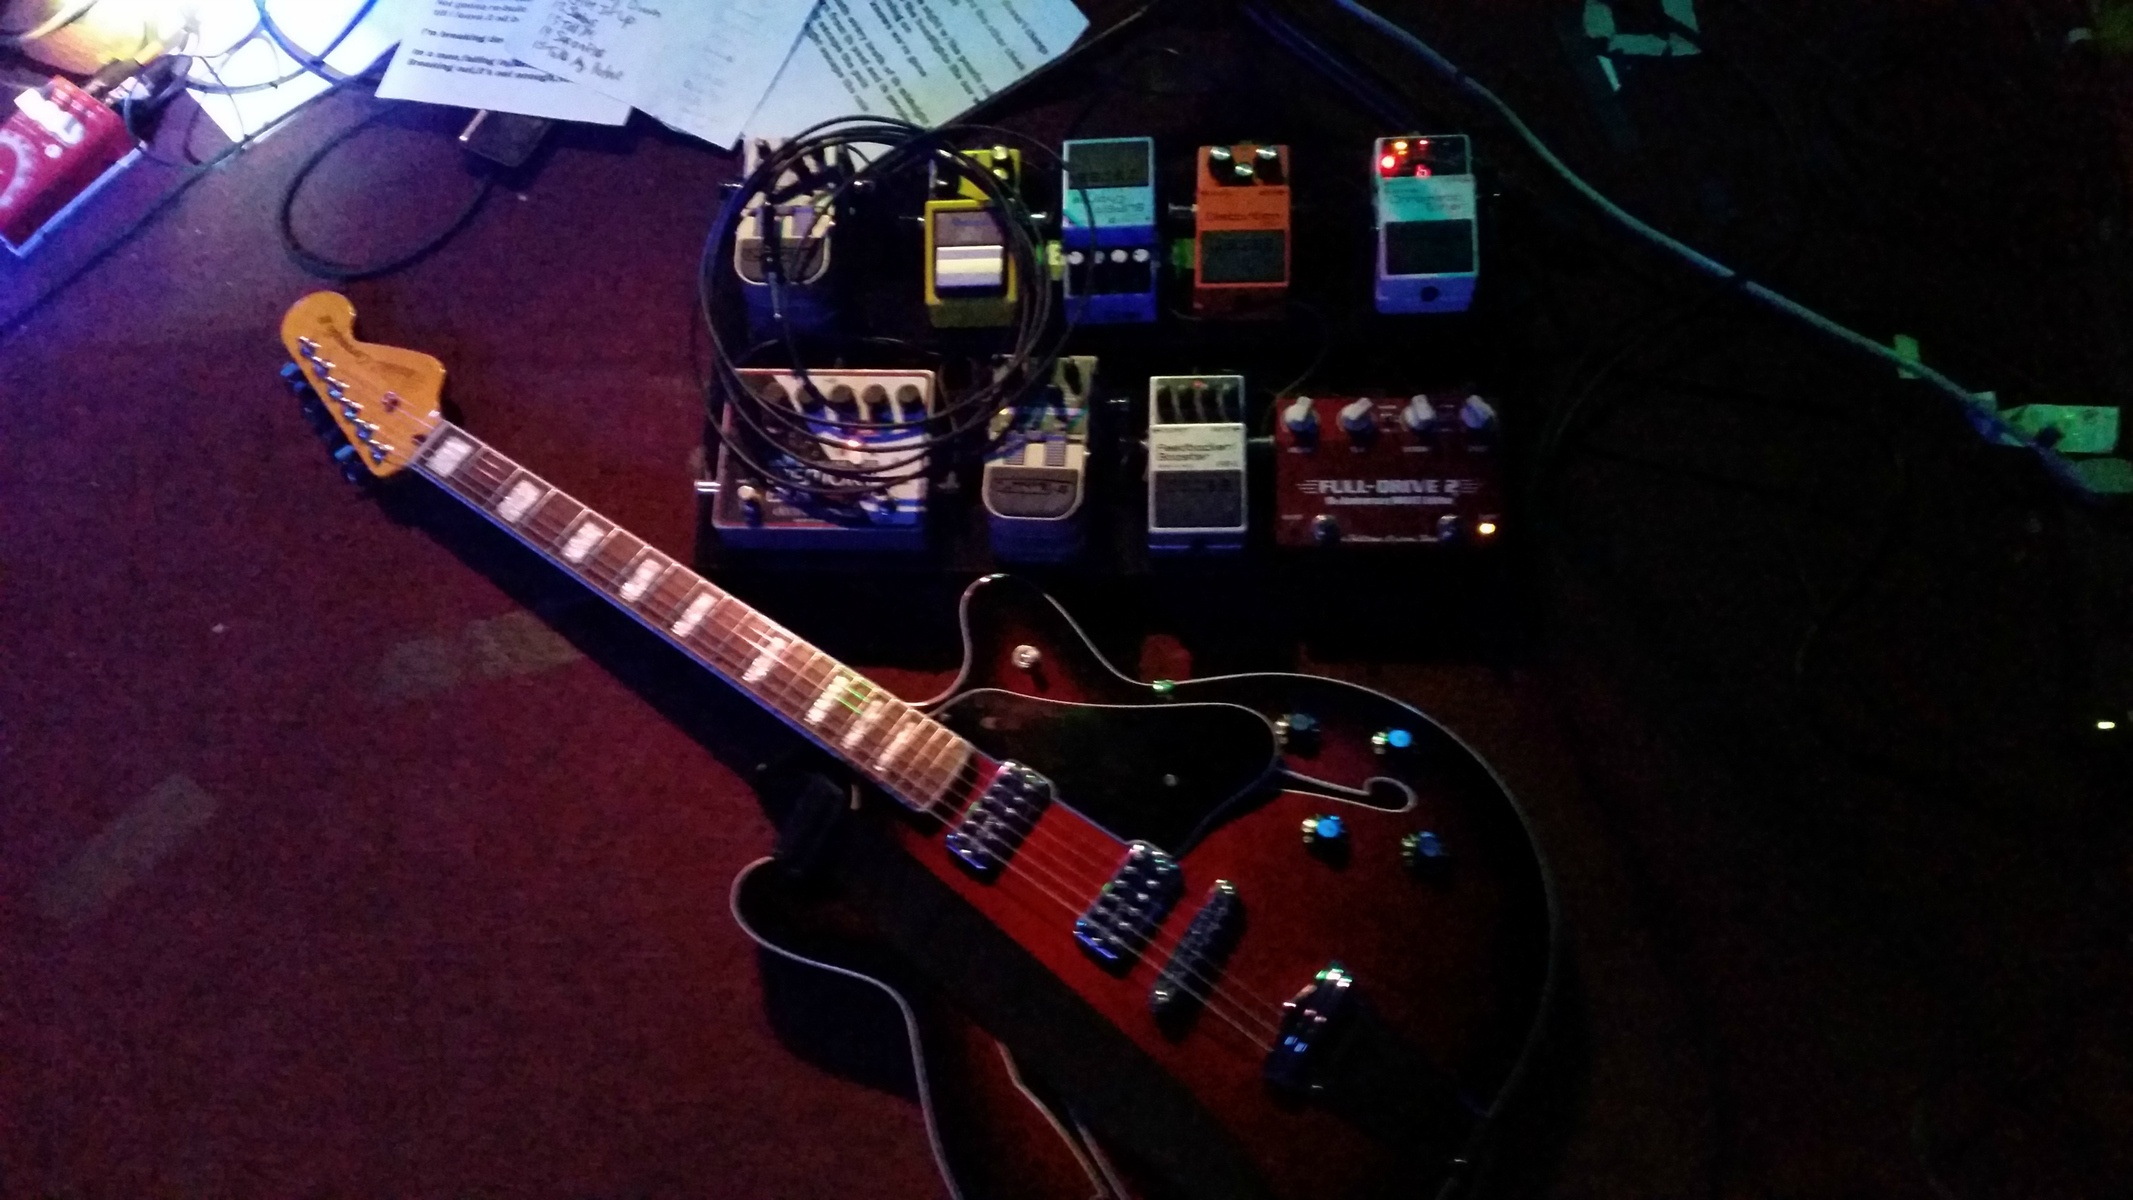 Large guitar and pedals